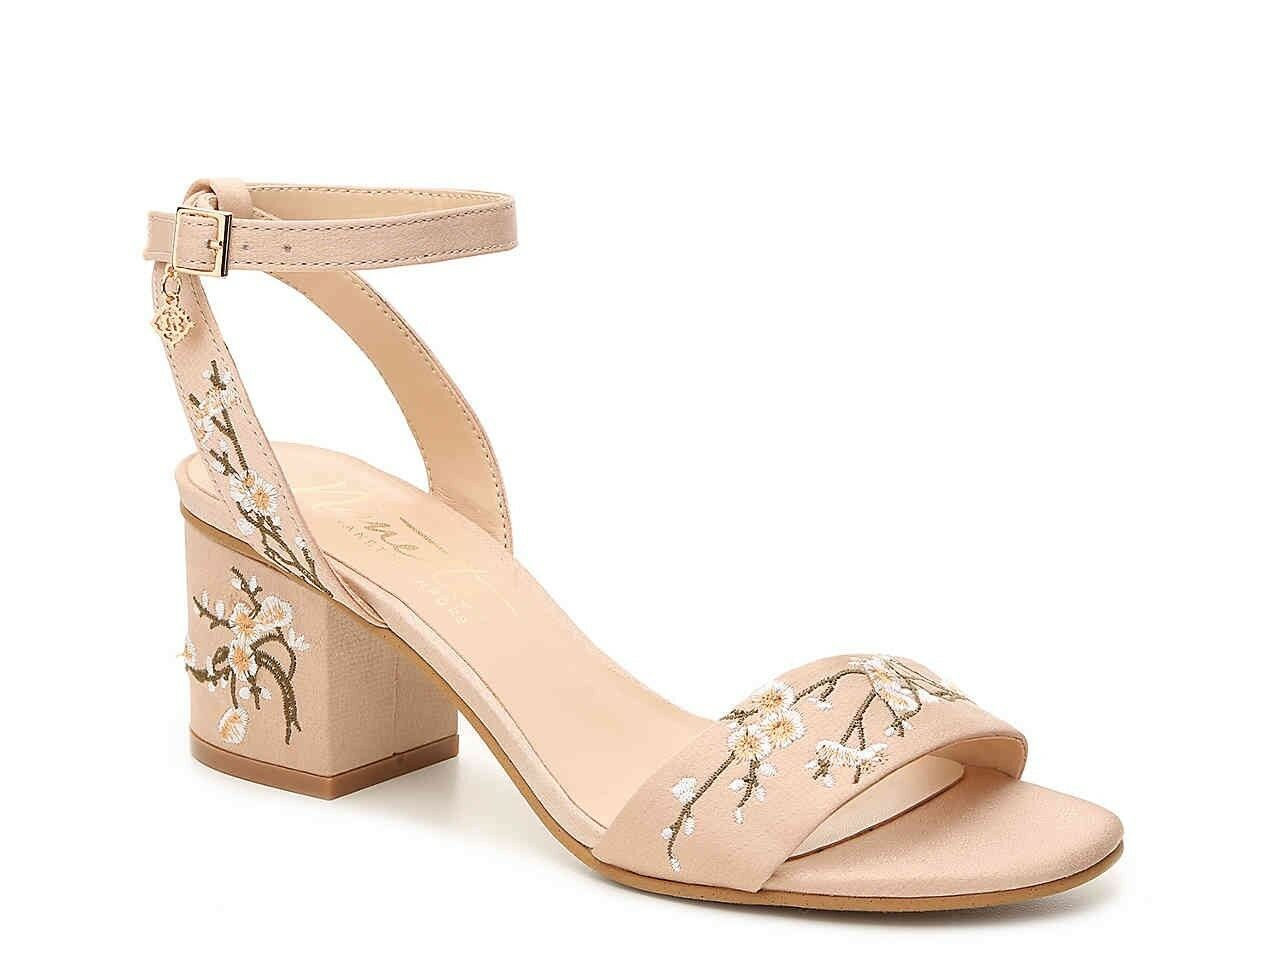 BHLDN  Nanette Lepore Nude Satin Embroidered Ankle Block Heel Sandal 8.5